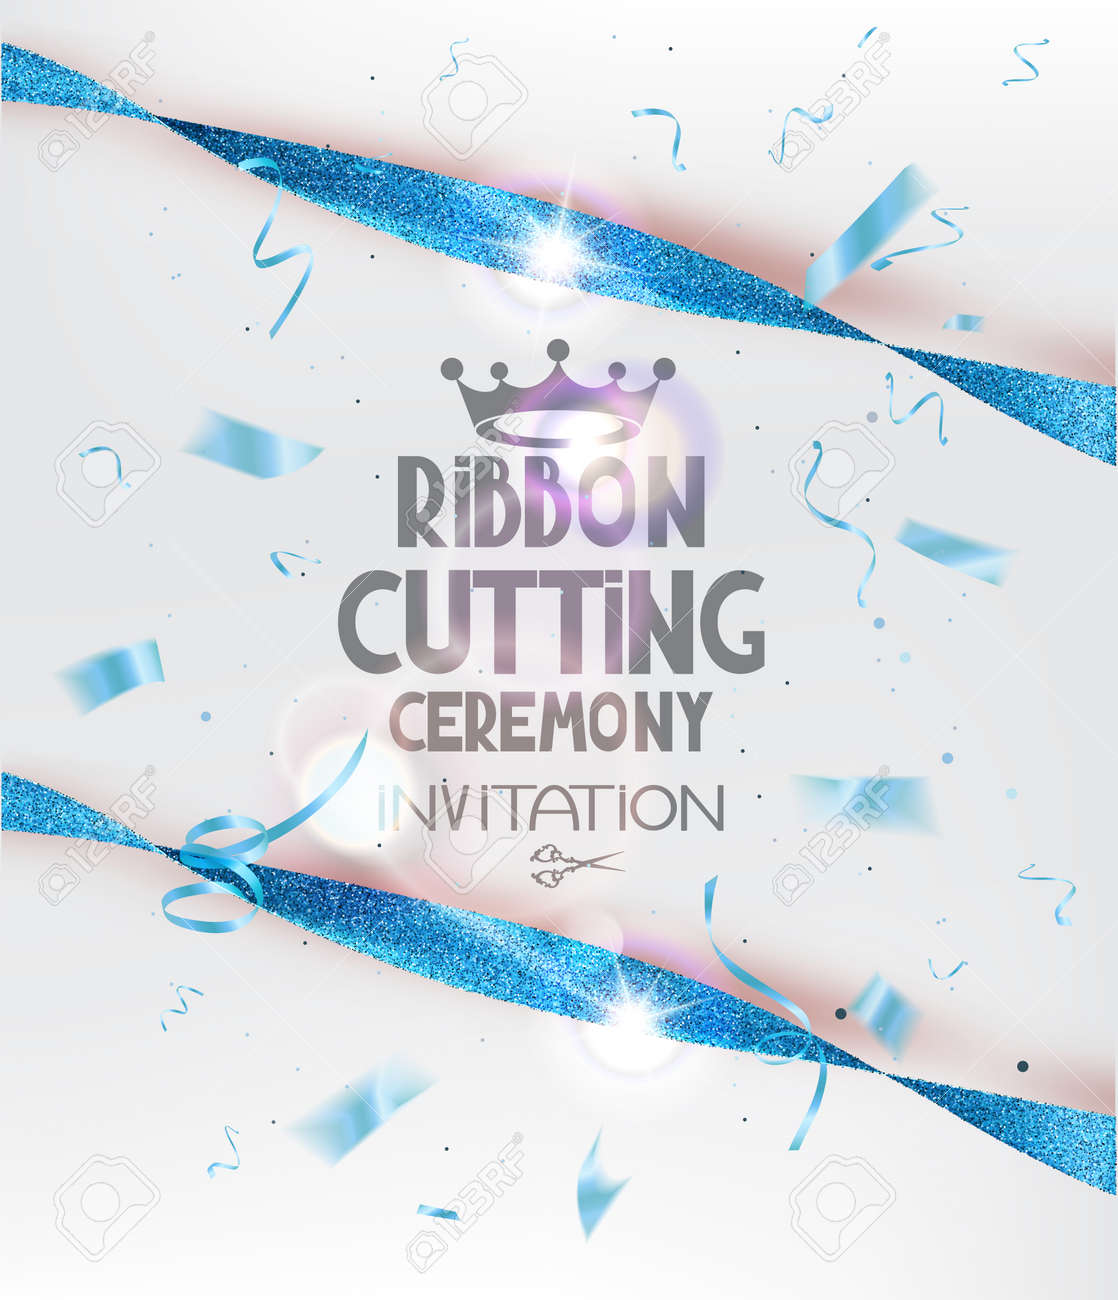 Ribbon cutting ceremony invitation card with blue sparkling ribbons ribbon cutting ceremony invitation card with blue sparkling ribbons and confetti vector illustration stock vector stopboris Image collections